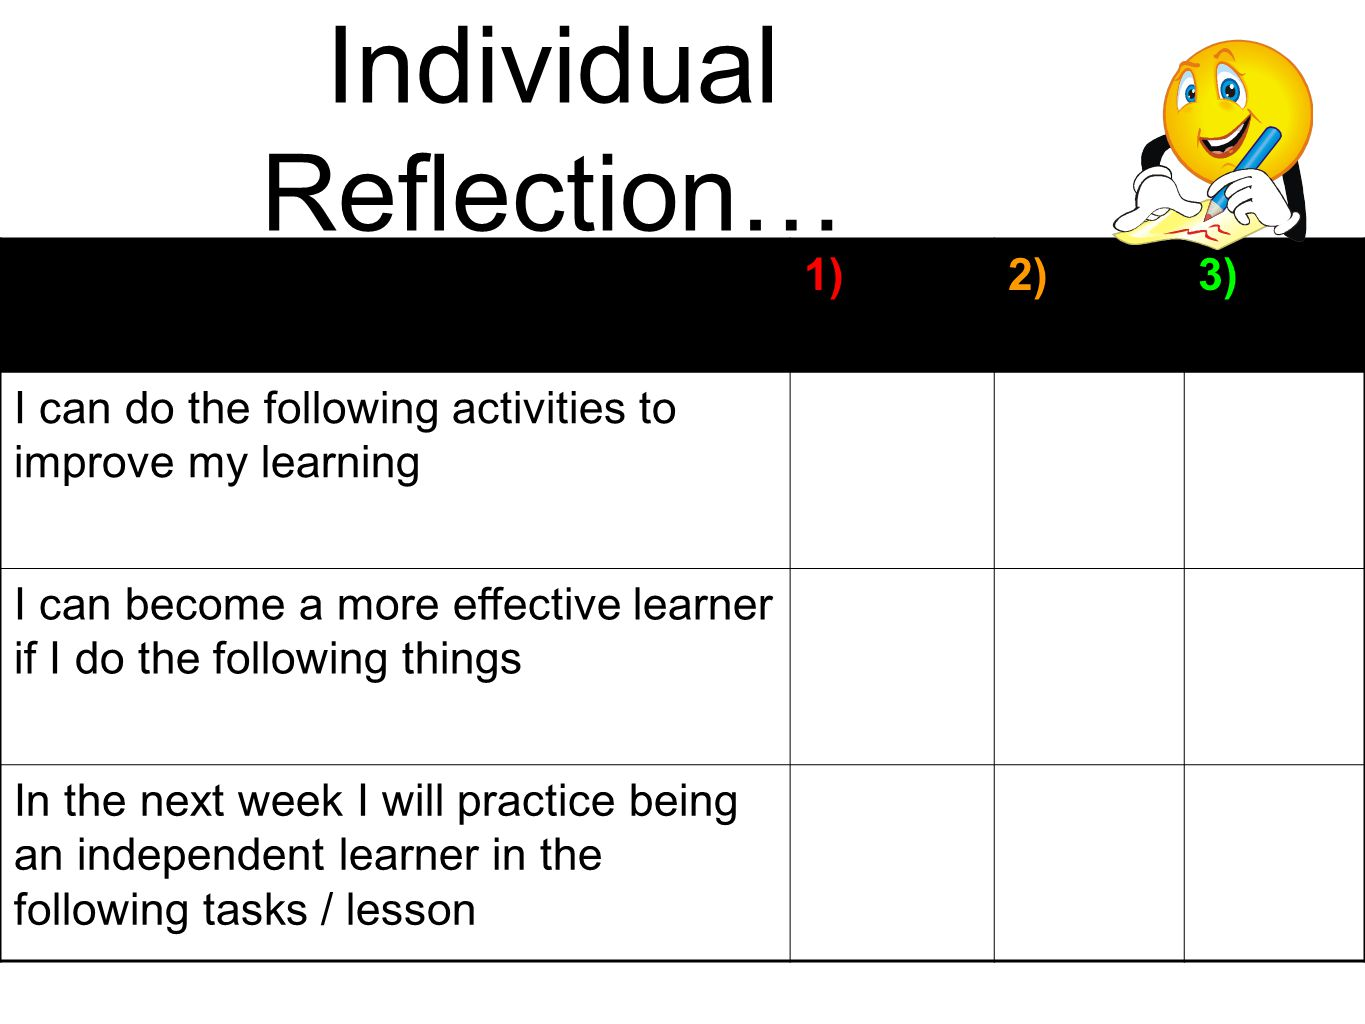 Individual Reflection… 1)2)3) I can do the following activities to improve my learning I can become a more effective learner if I do the following things In the next week I will practice being an independent learner in the following tasks / lesson